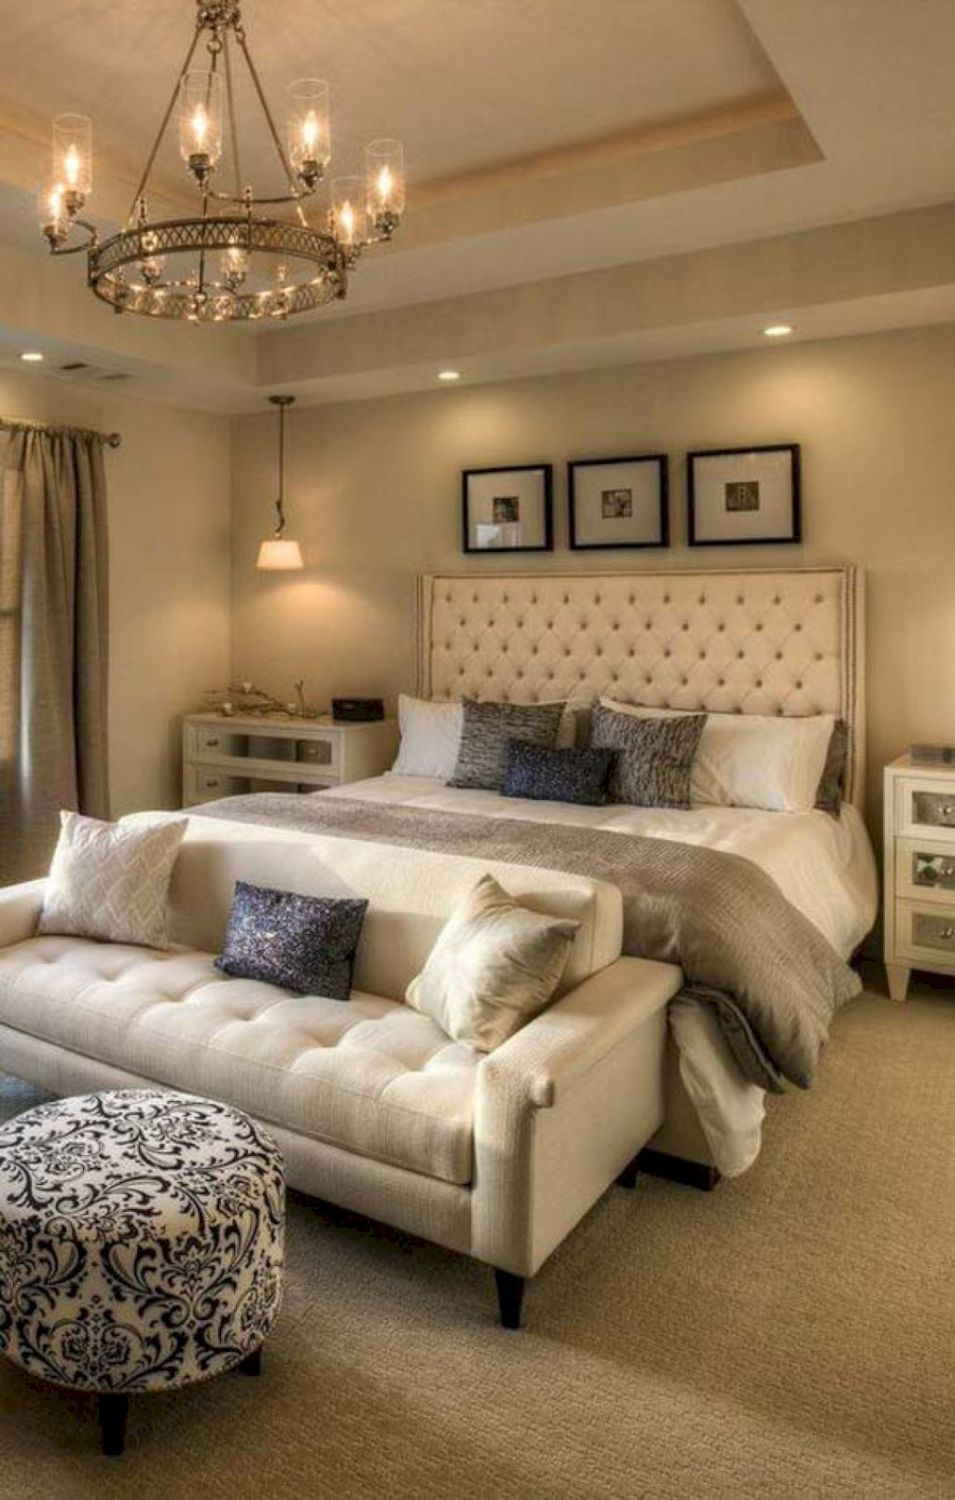 3 Master Bedroom Remodel Ideas on a Budget  Master bedrooms